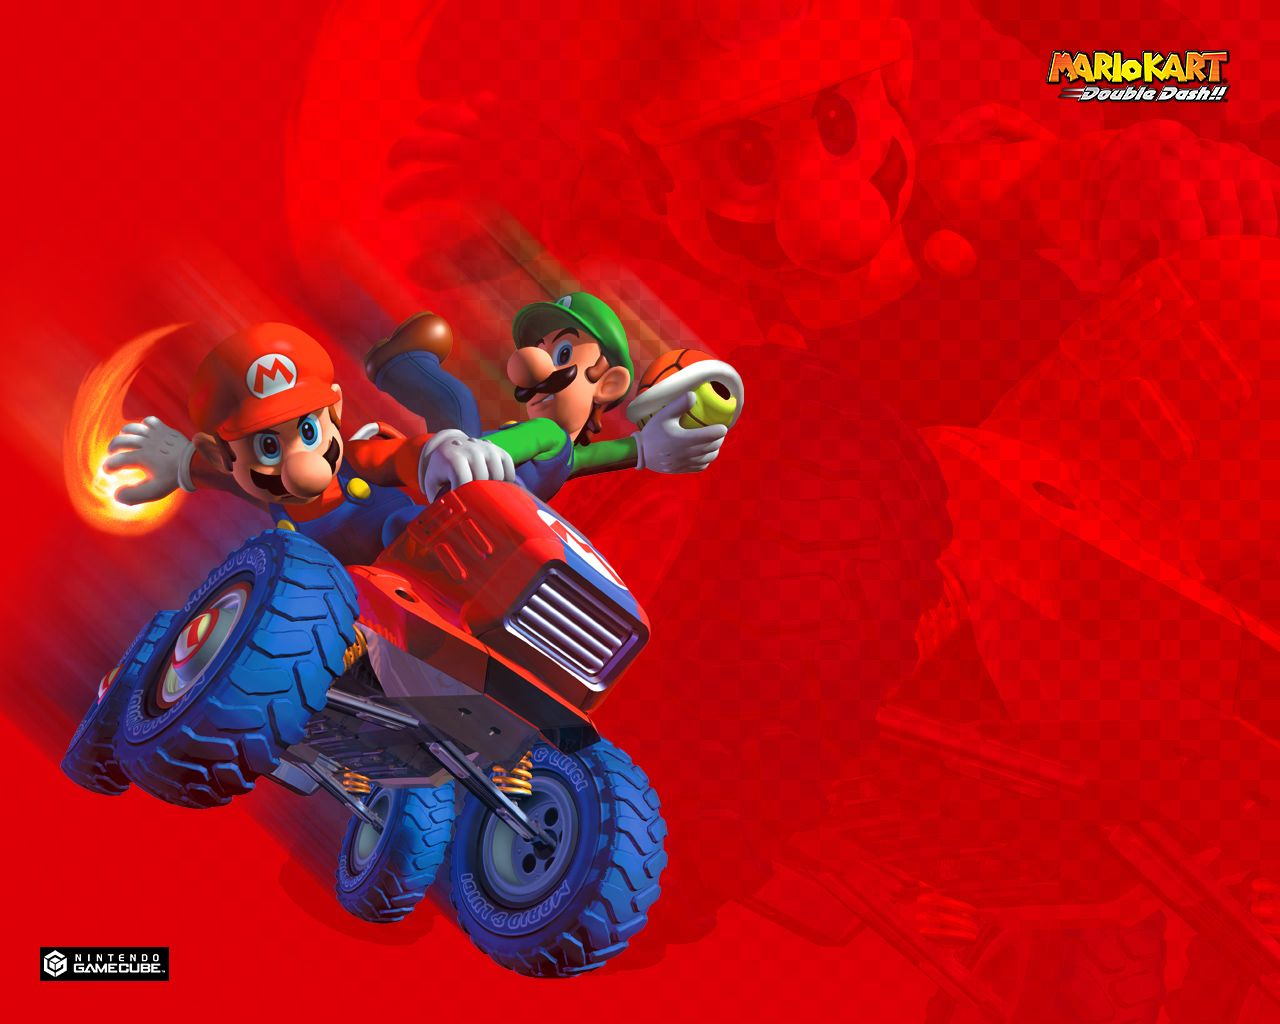 Mario Kart Double Dash Nintendo Gamecube 1280x1024 Wallpaper With Images Mario Kart Mario Mario And Luigi